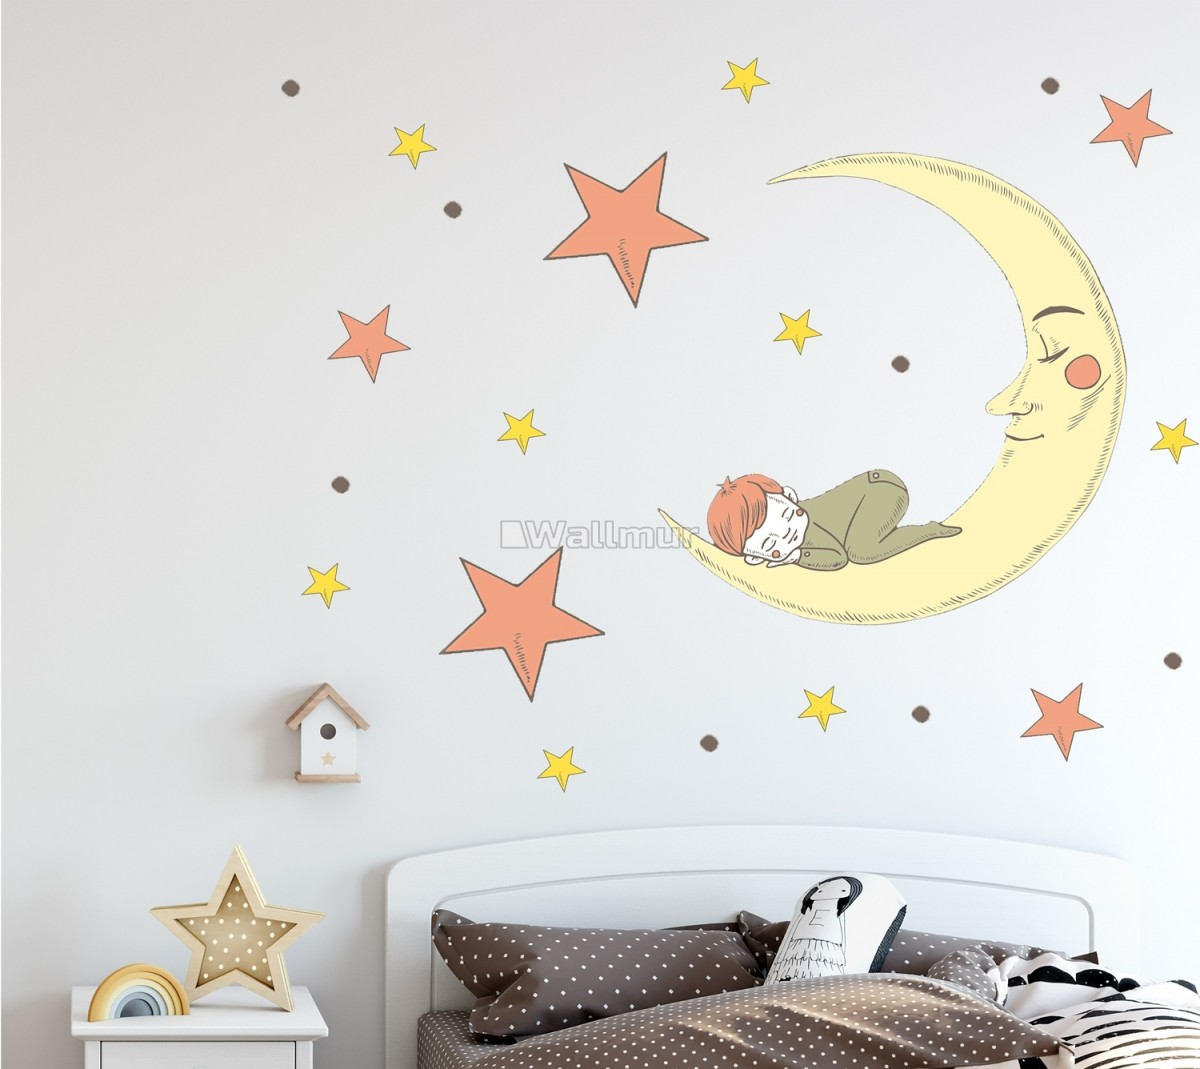 Nursery Smiling Moon with Orange and Yellow Stars Wall Decal Sticker